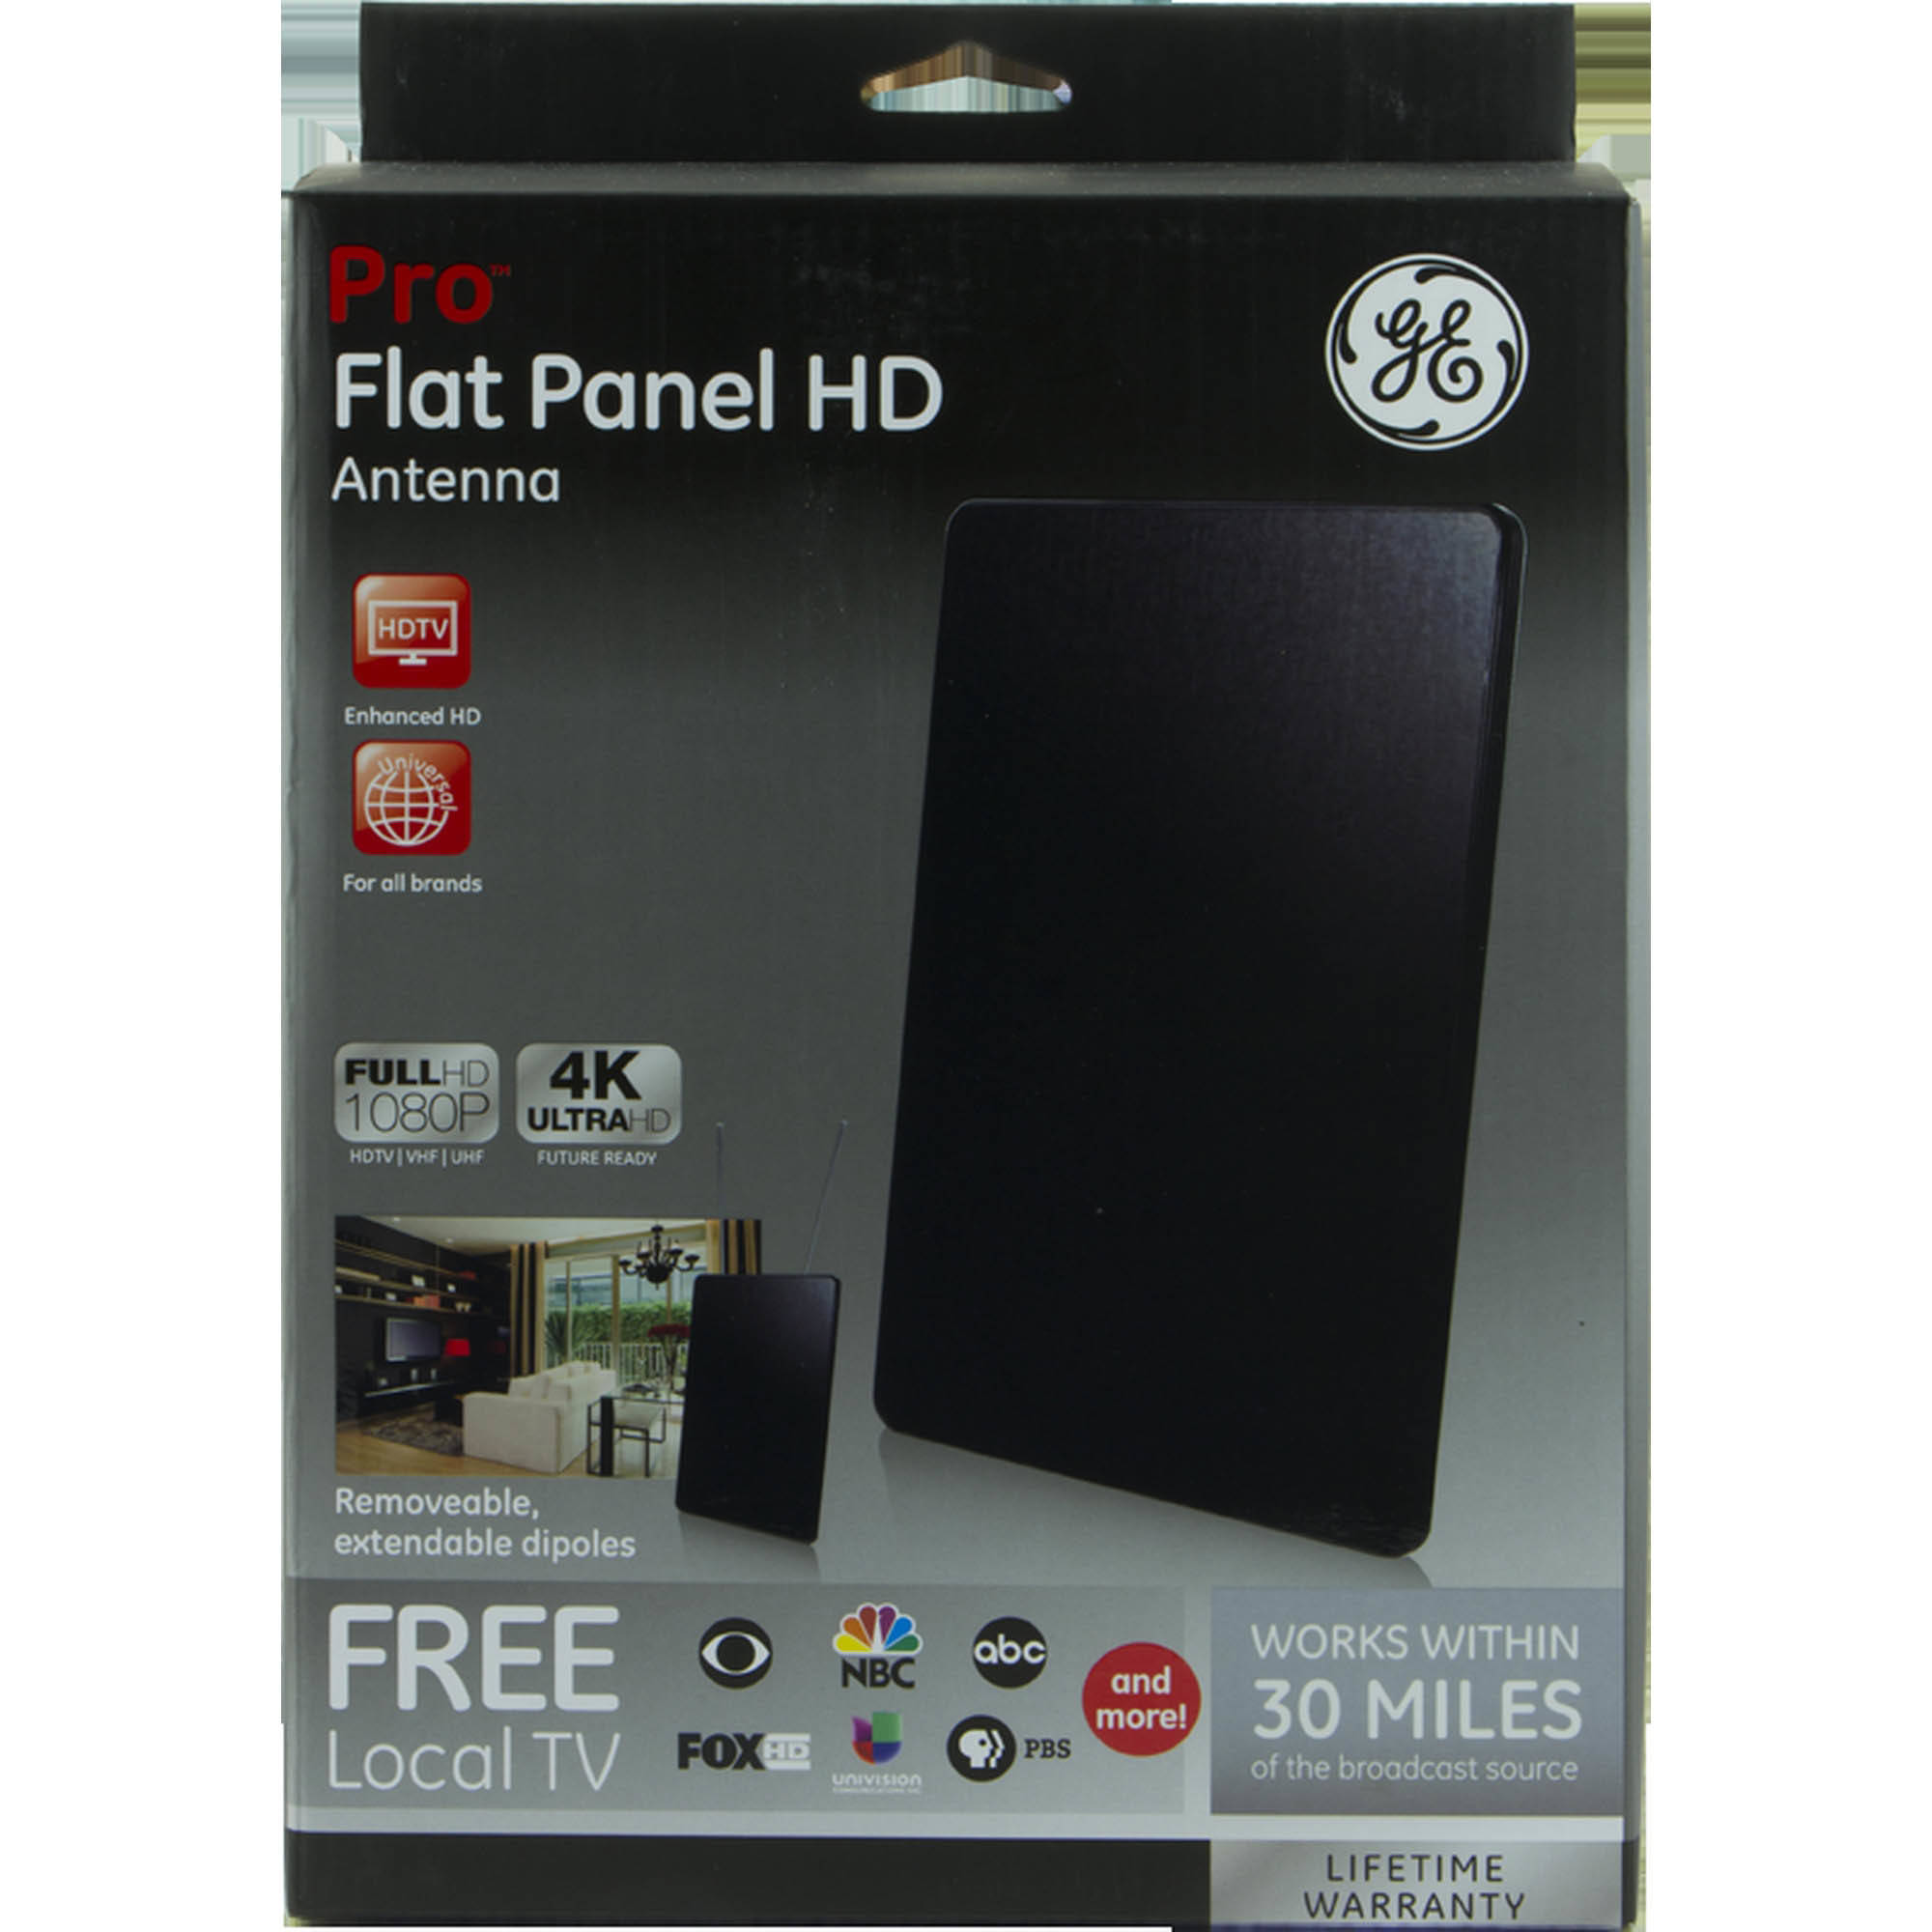 ge pro flat panel hd antenna - walmart